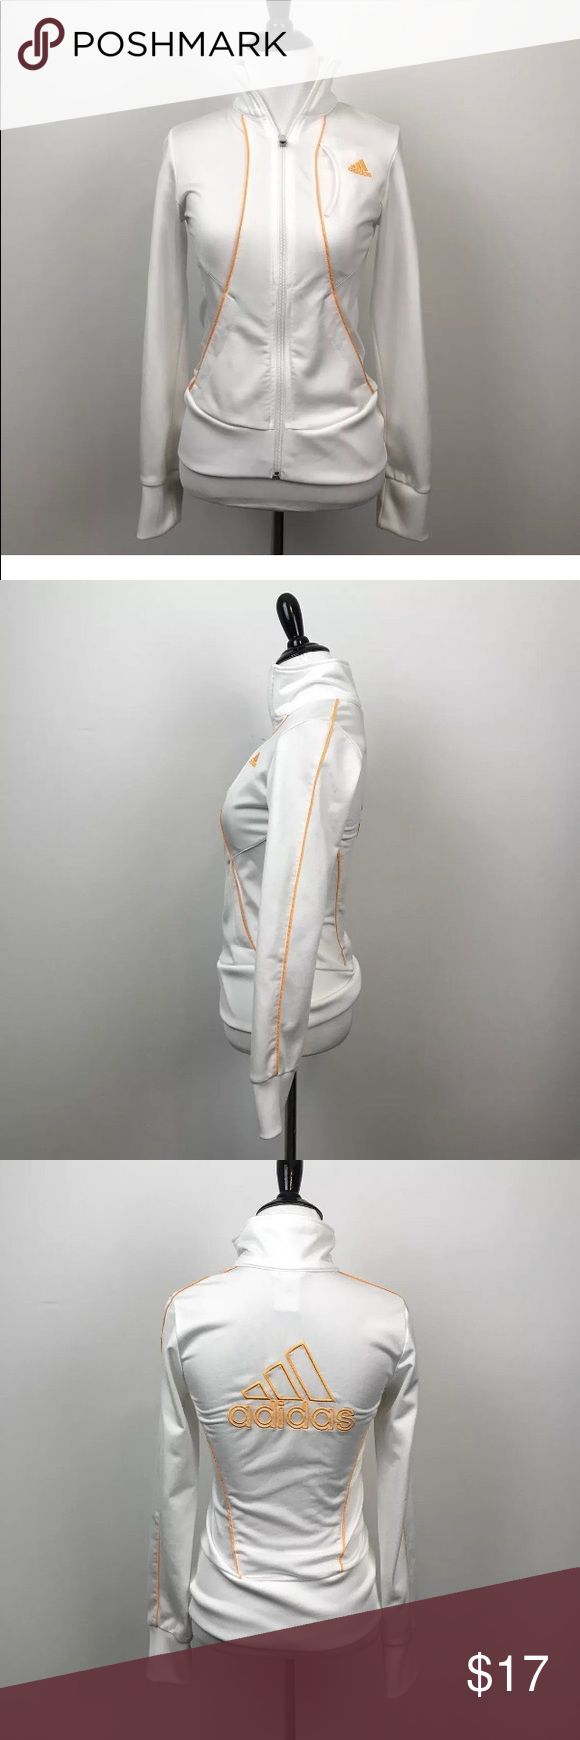 """Adidas Woman Size XS White Track Jacket Size XS White with yellow lettering Machine washable Long Sleeve Athletic Zip Up 15"""" armpit to armpit  24"""" length 24.5"""" Sleeve Adidas Tops Sweatshirts & Hoodies"""